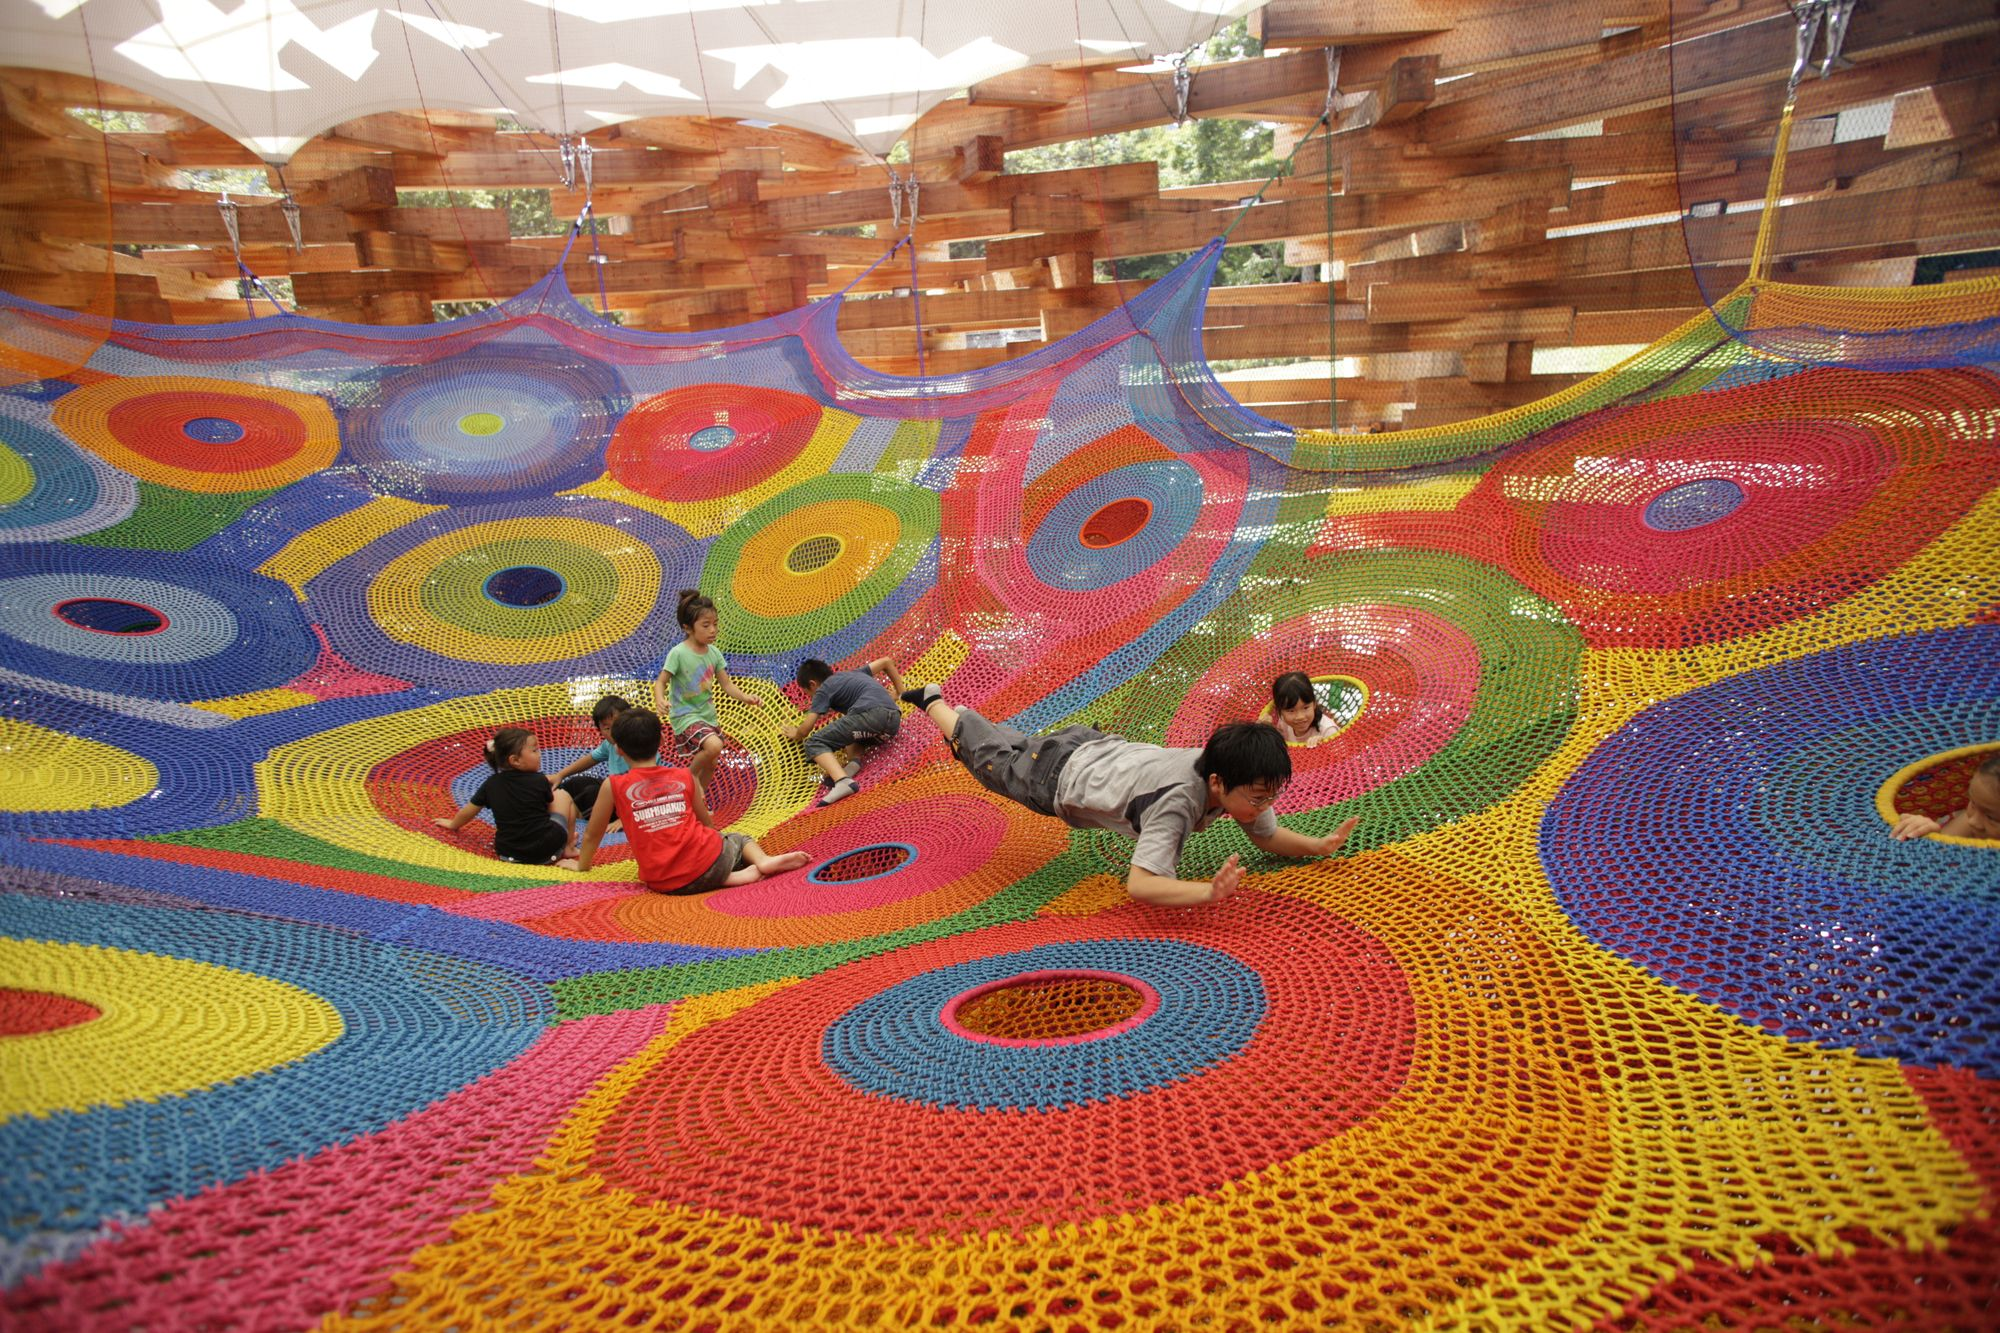 Meet the Artist Behind Those Amazing Hand Knitted Playgrounds